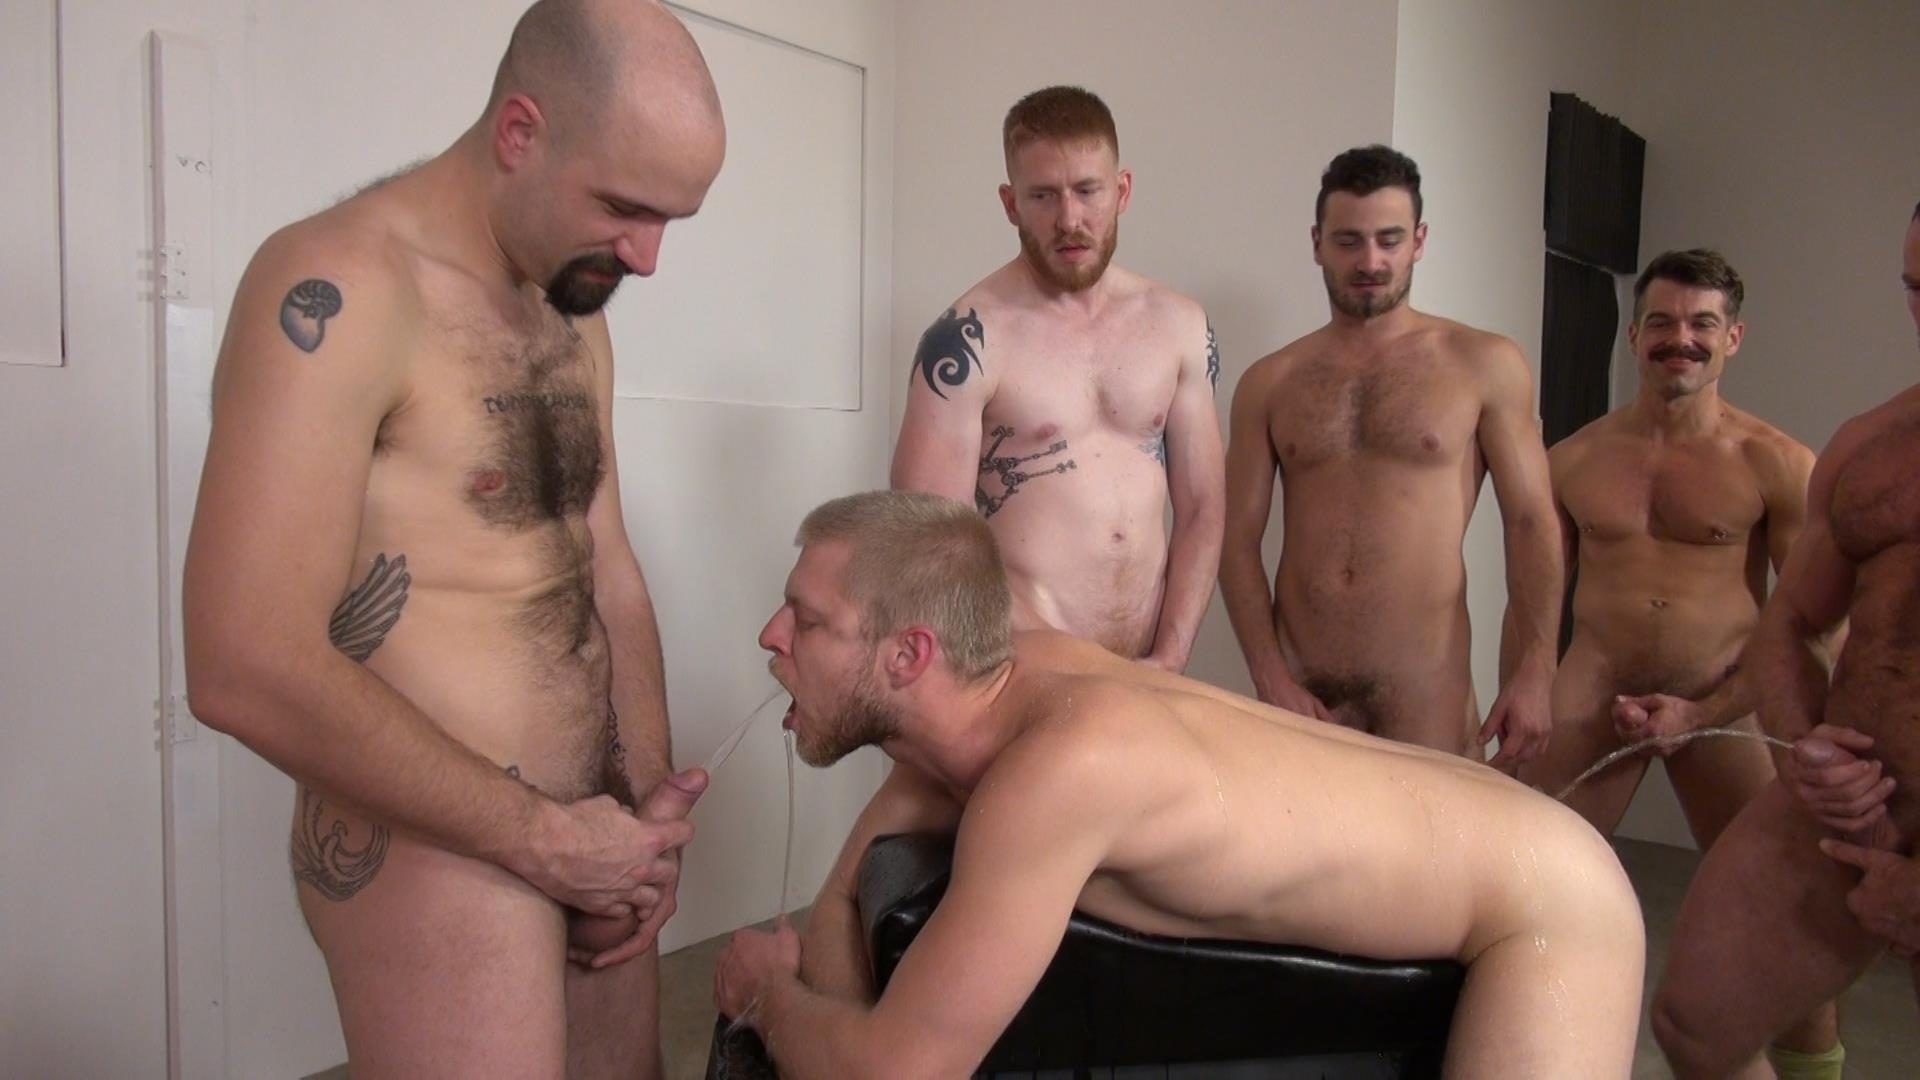 Raw and Rough Bareback Gay Sex Orgy Amateur Gay Porn 08